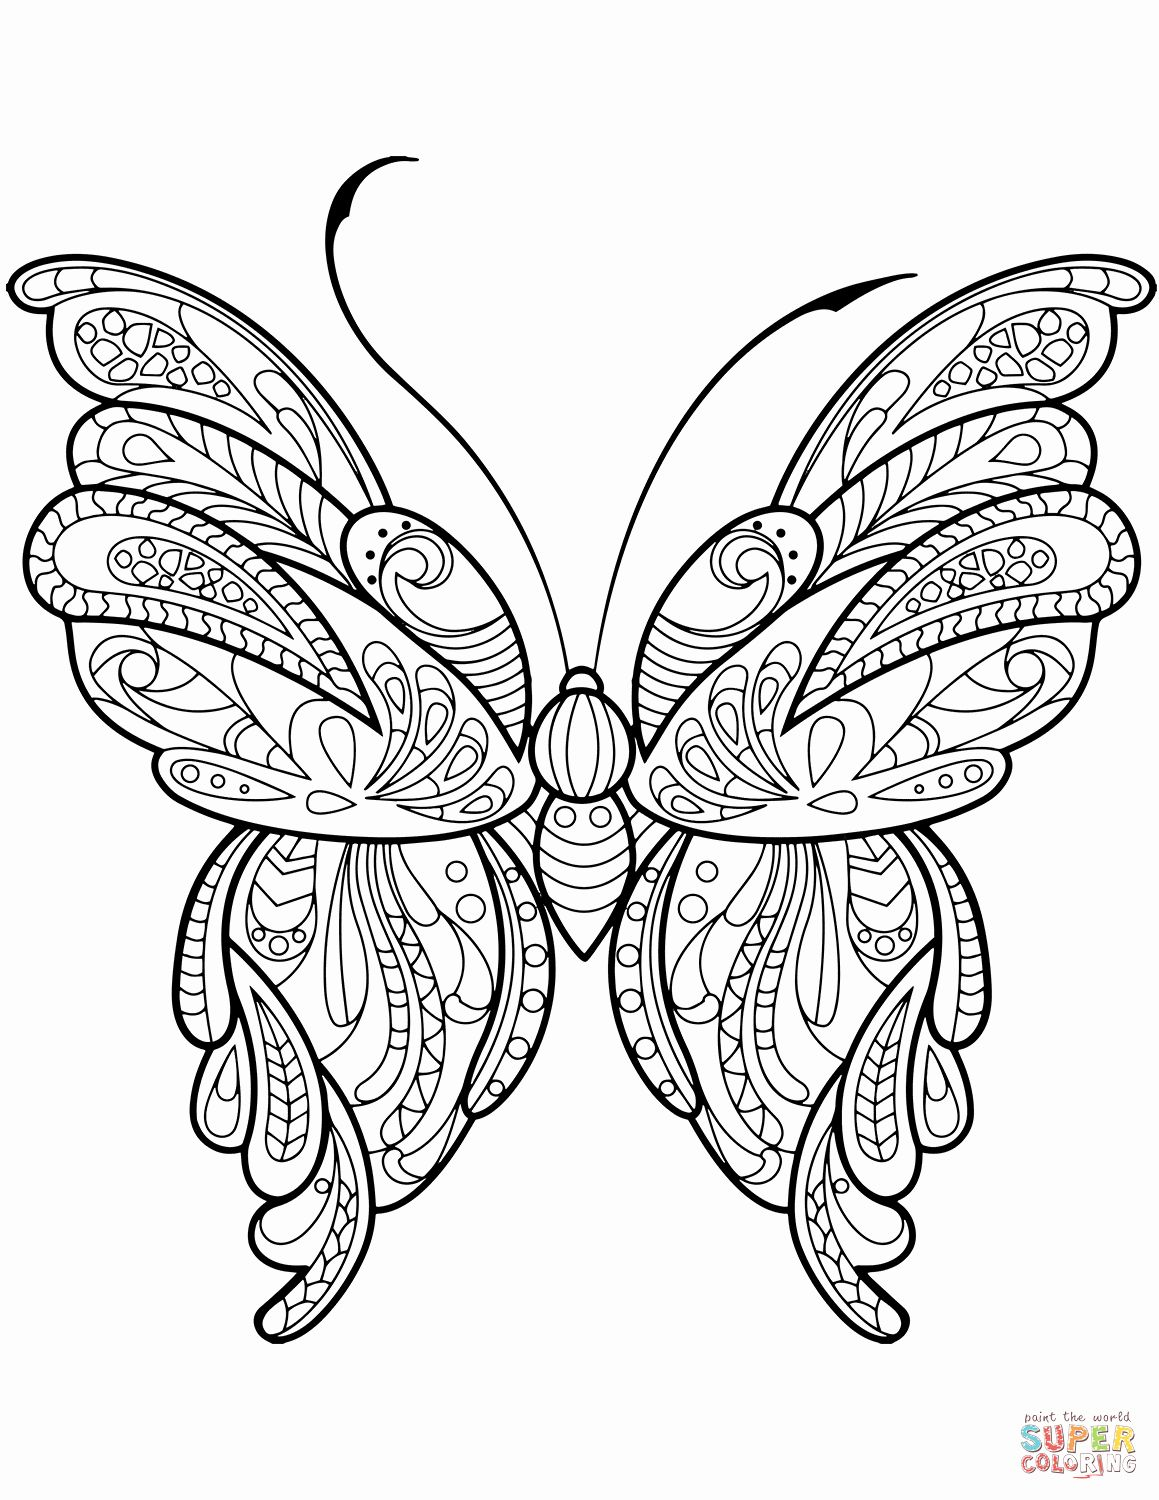 Free Printable Zentangle Coloring Pages In